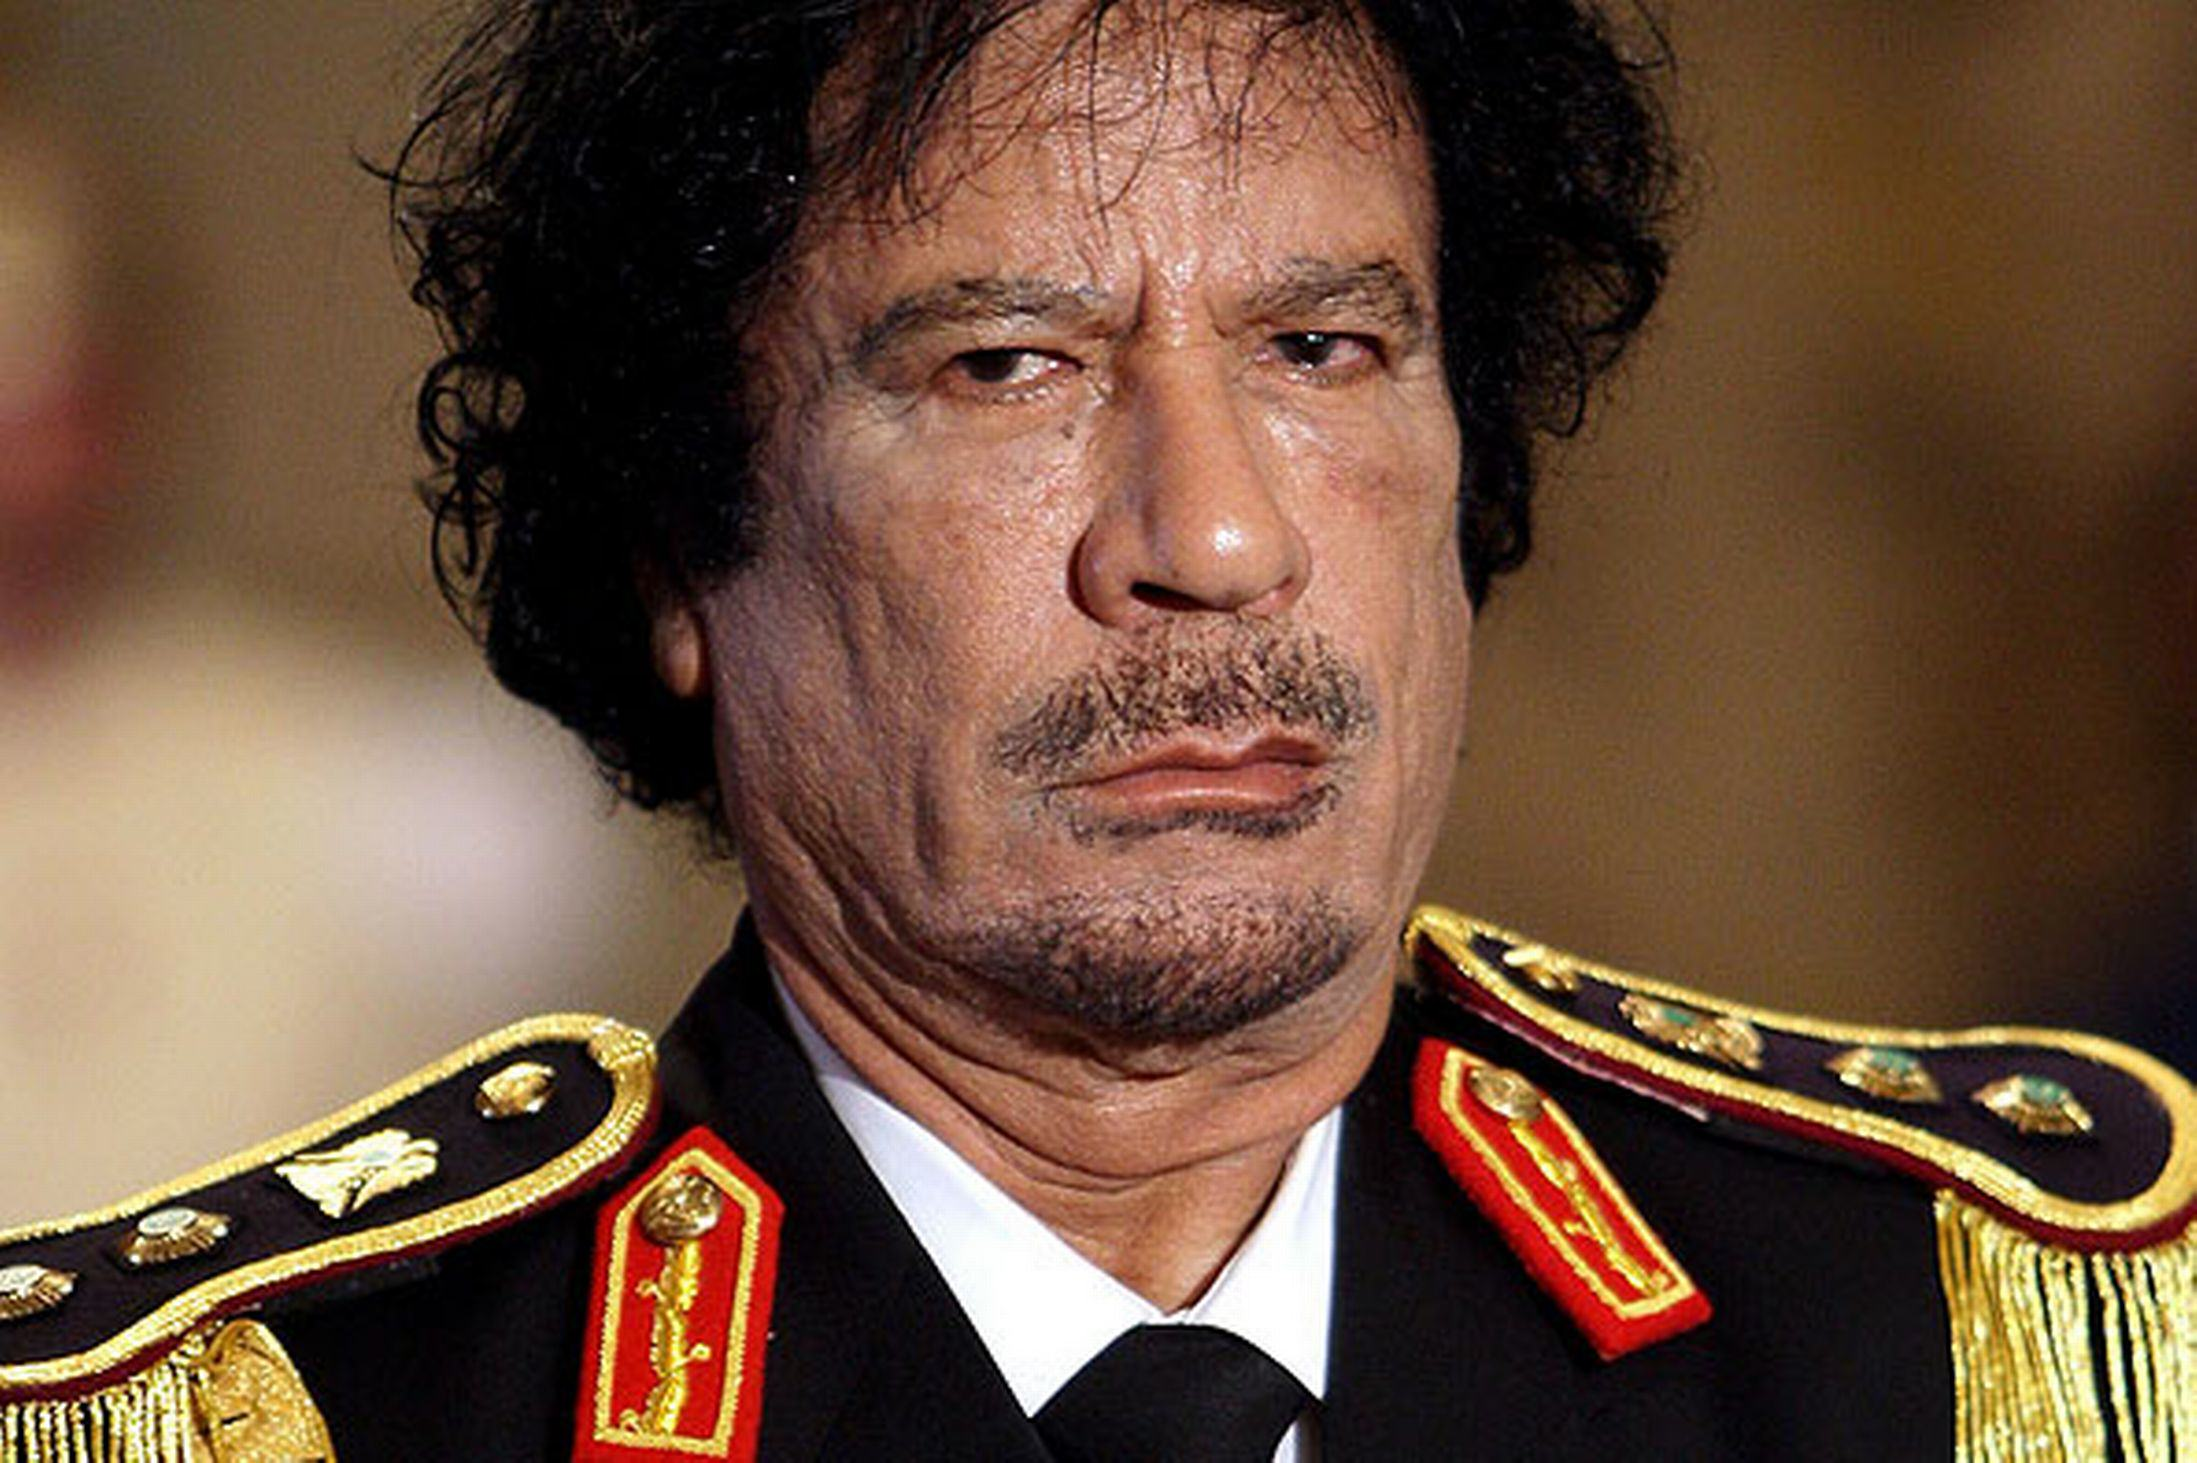 Leaked Email Shows Tony Blair Told Gaddafi To Hide And Avoid Capture UNILAD colonel gaddafi pic reuters 6180439977